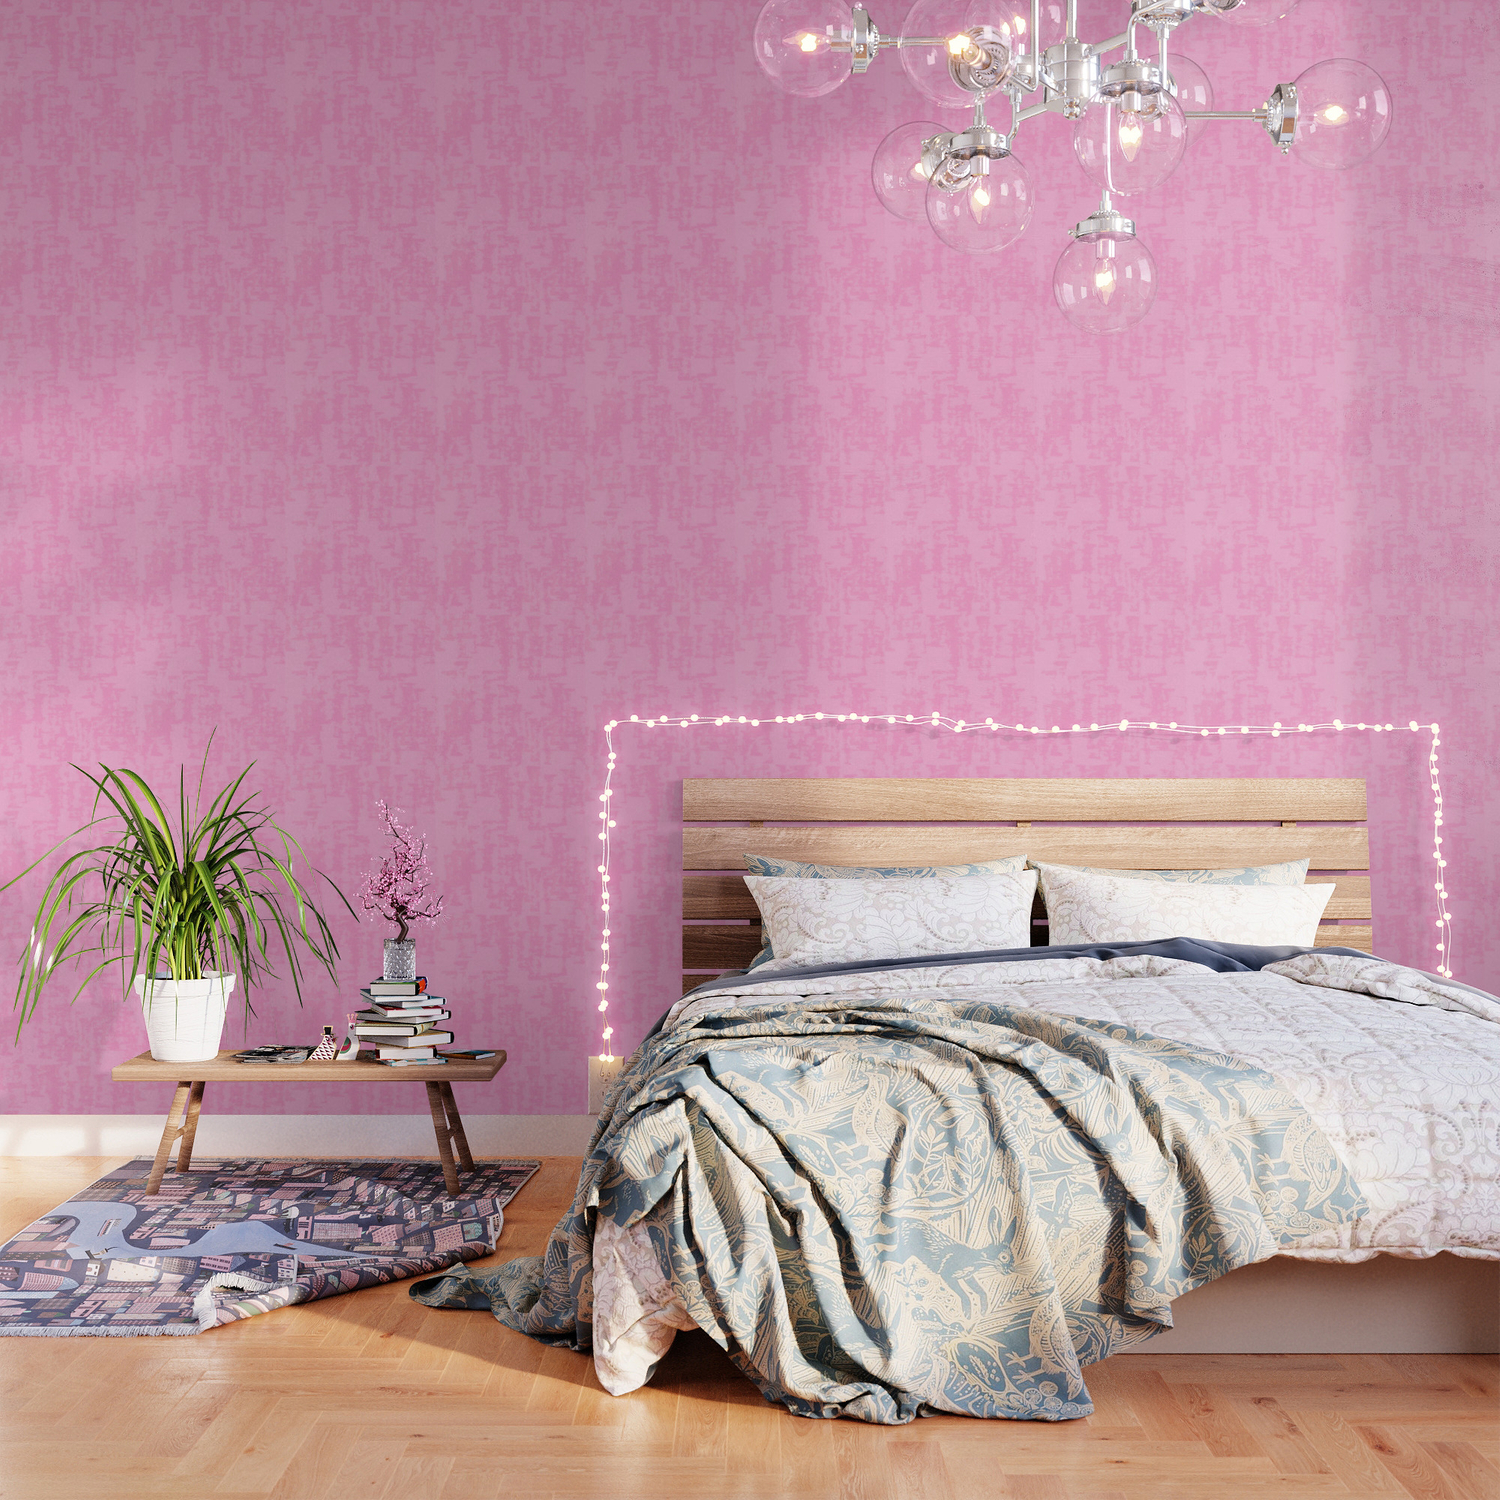 Cotton Candy Naturalistic Wallpaper by deluxephotos Society6 1500x1500